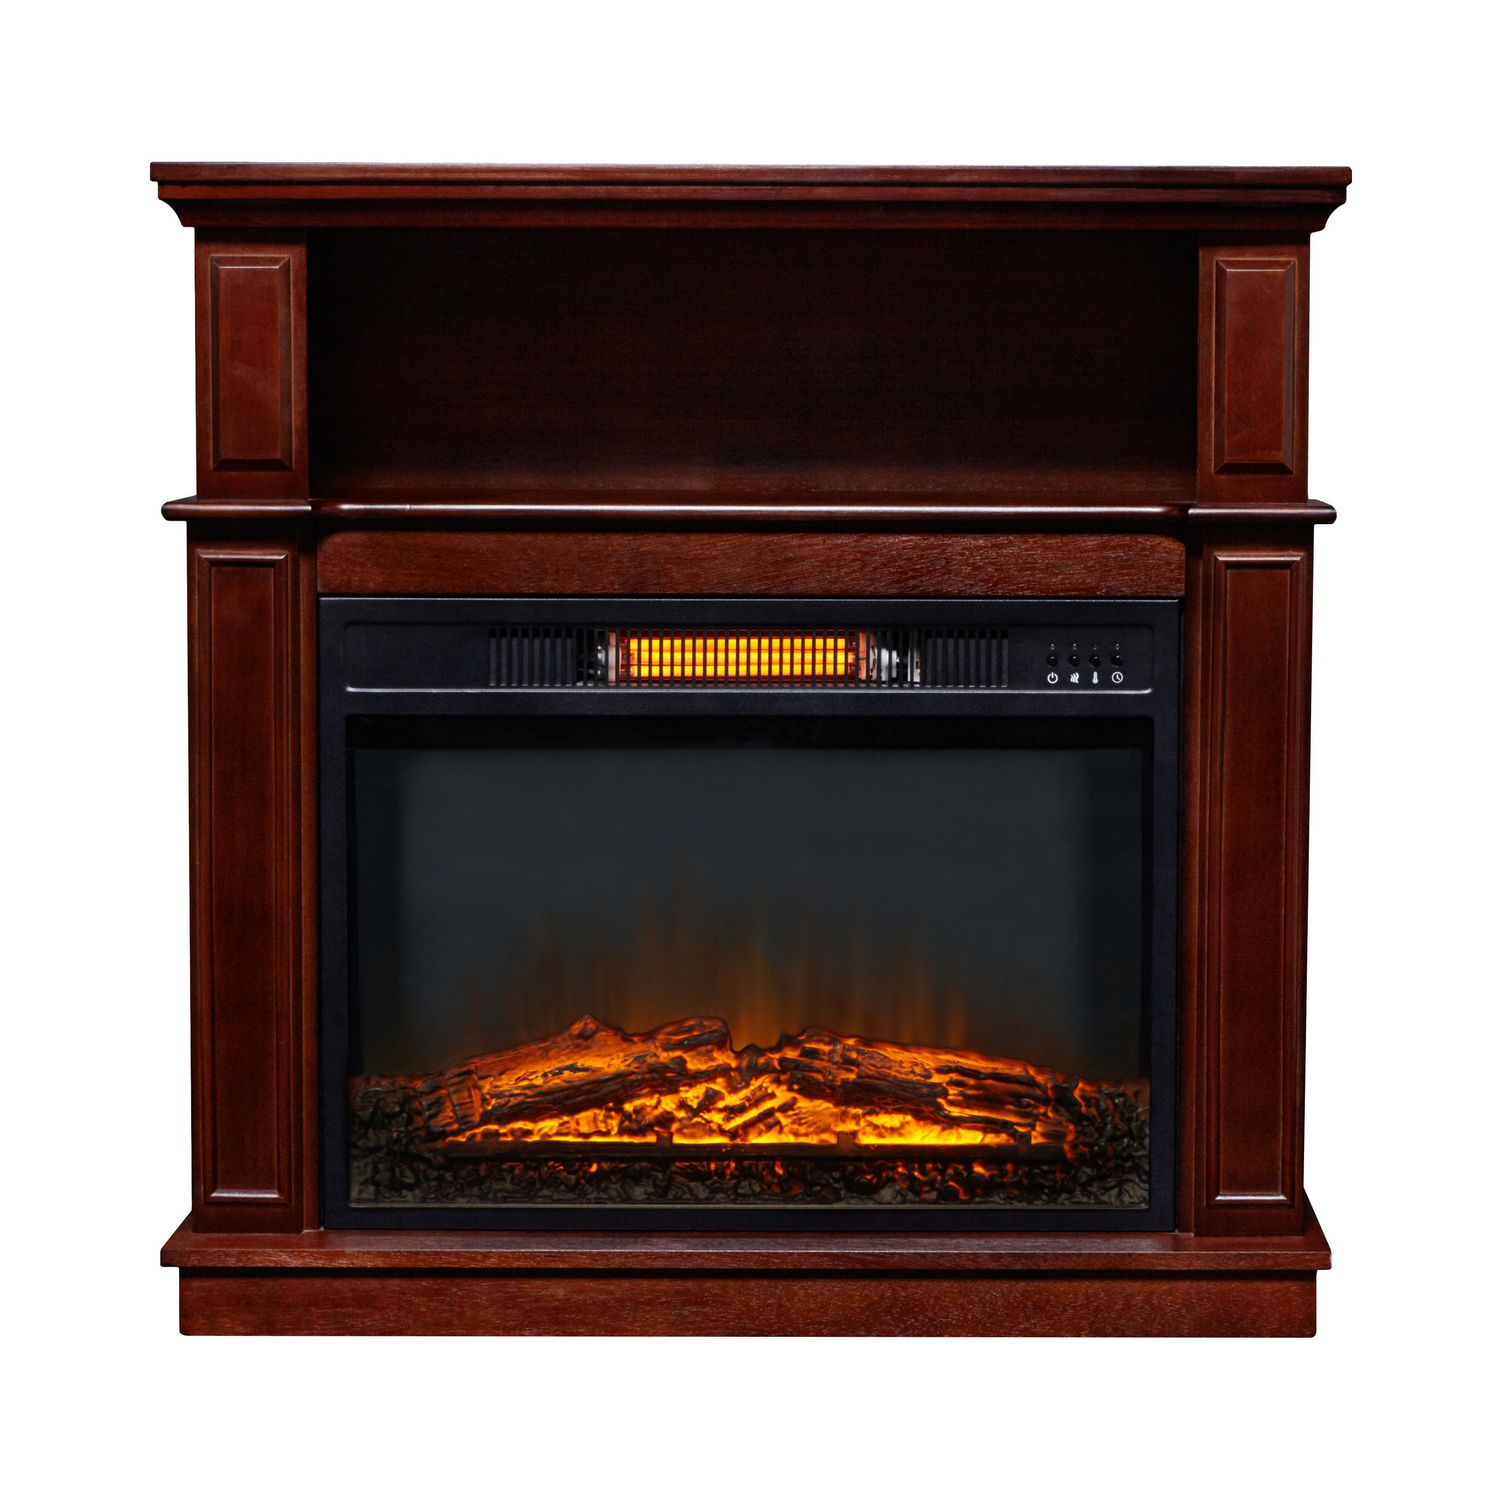 Decor Flame 32 Infrared Electric Stove